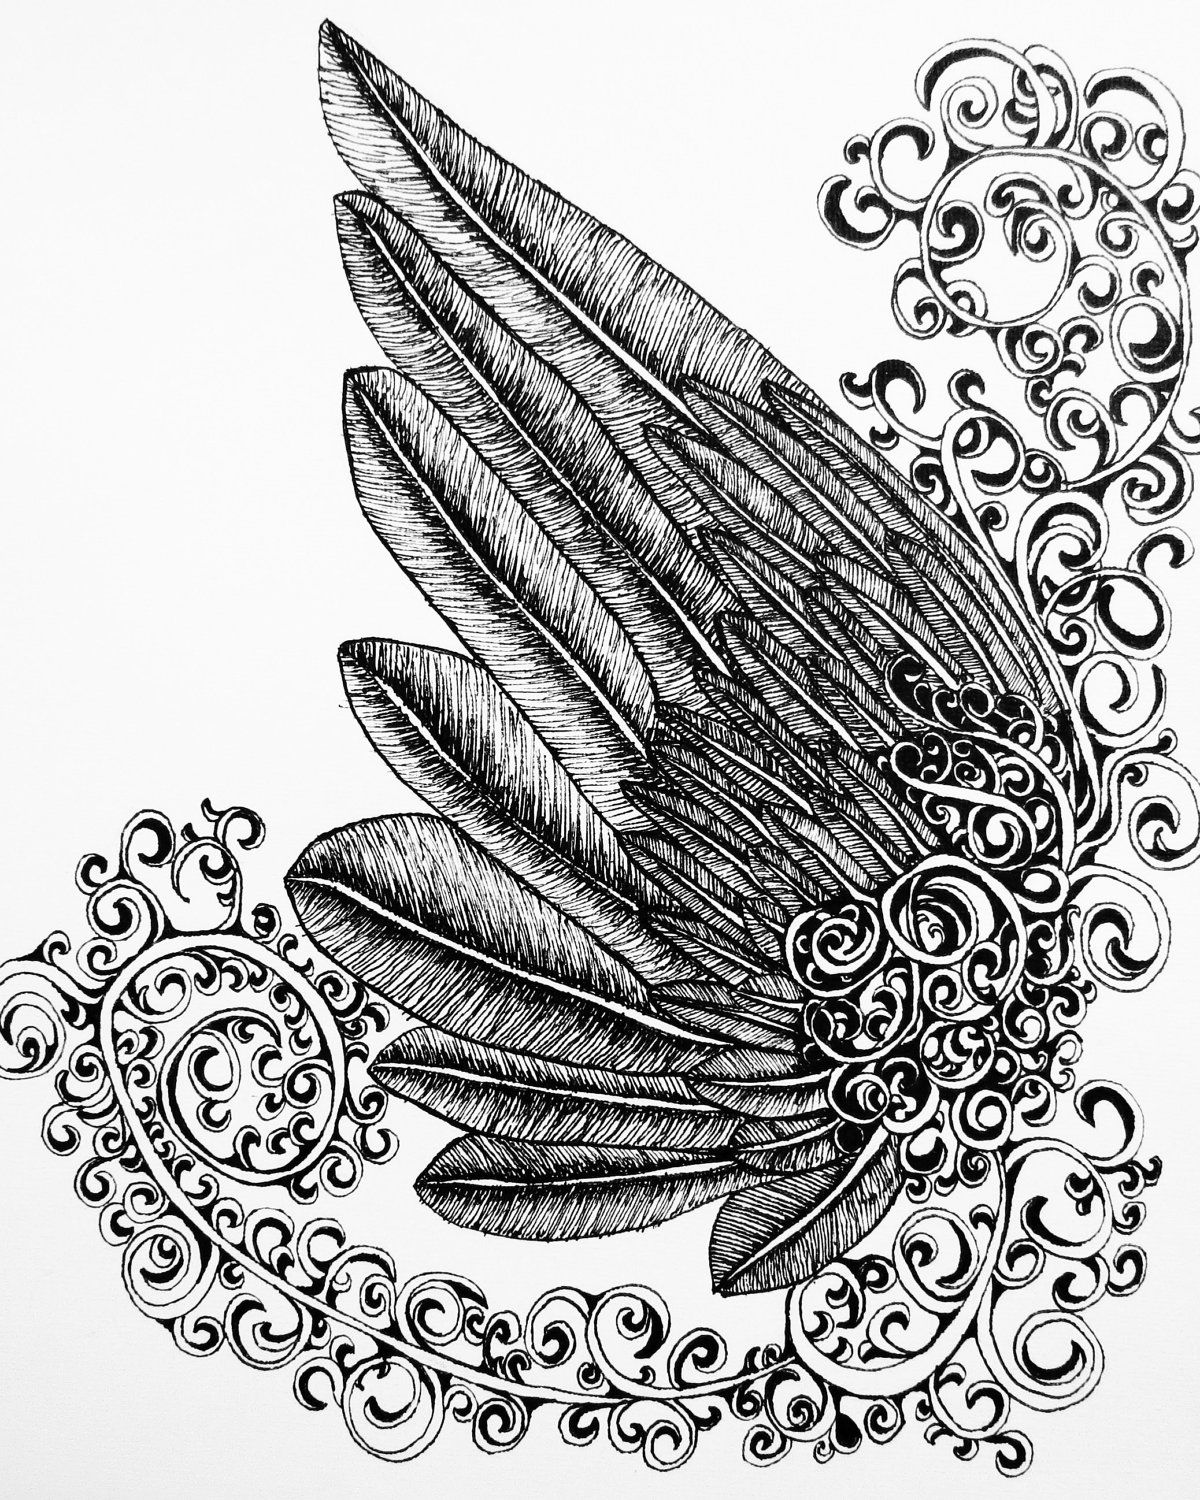 Printable Wing And Filigree Swirls Pen And Ink Drawing By